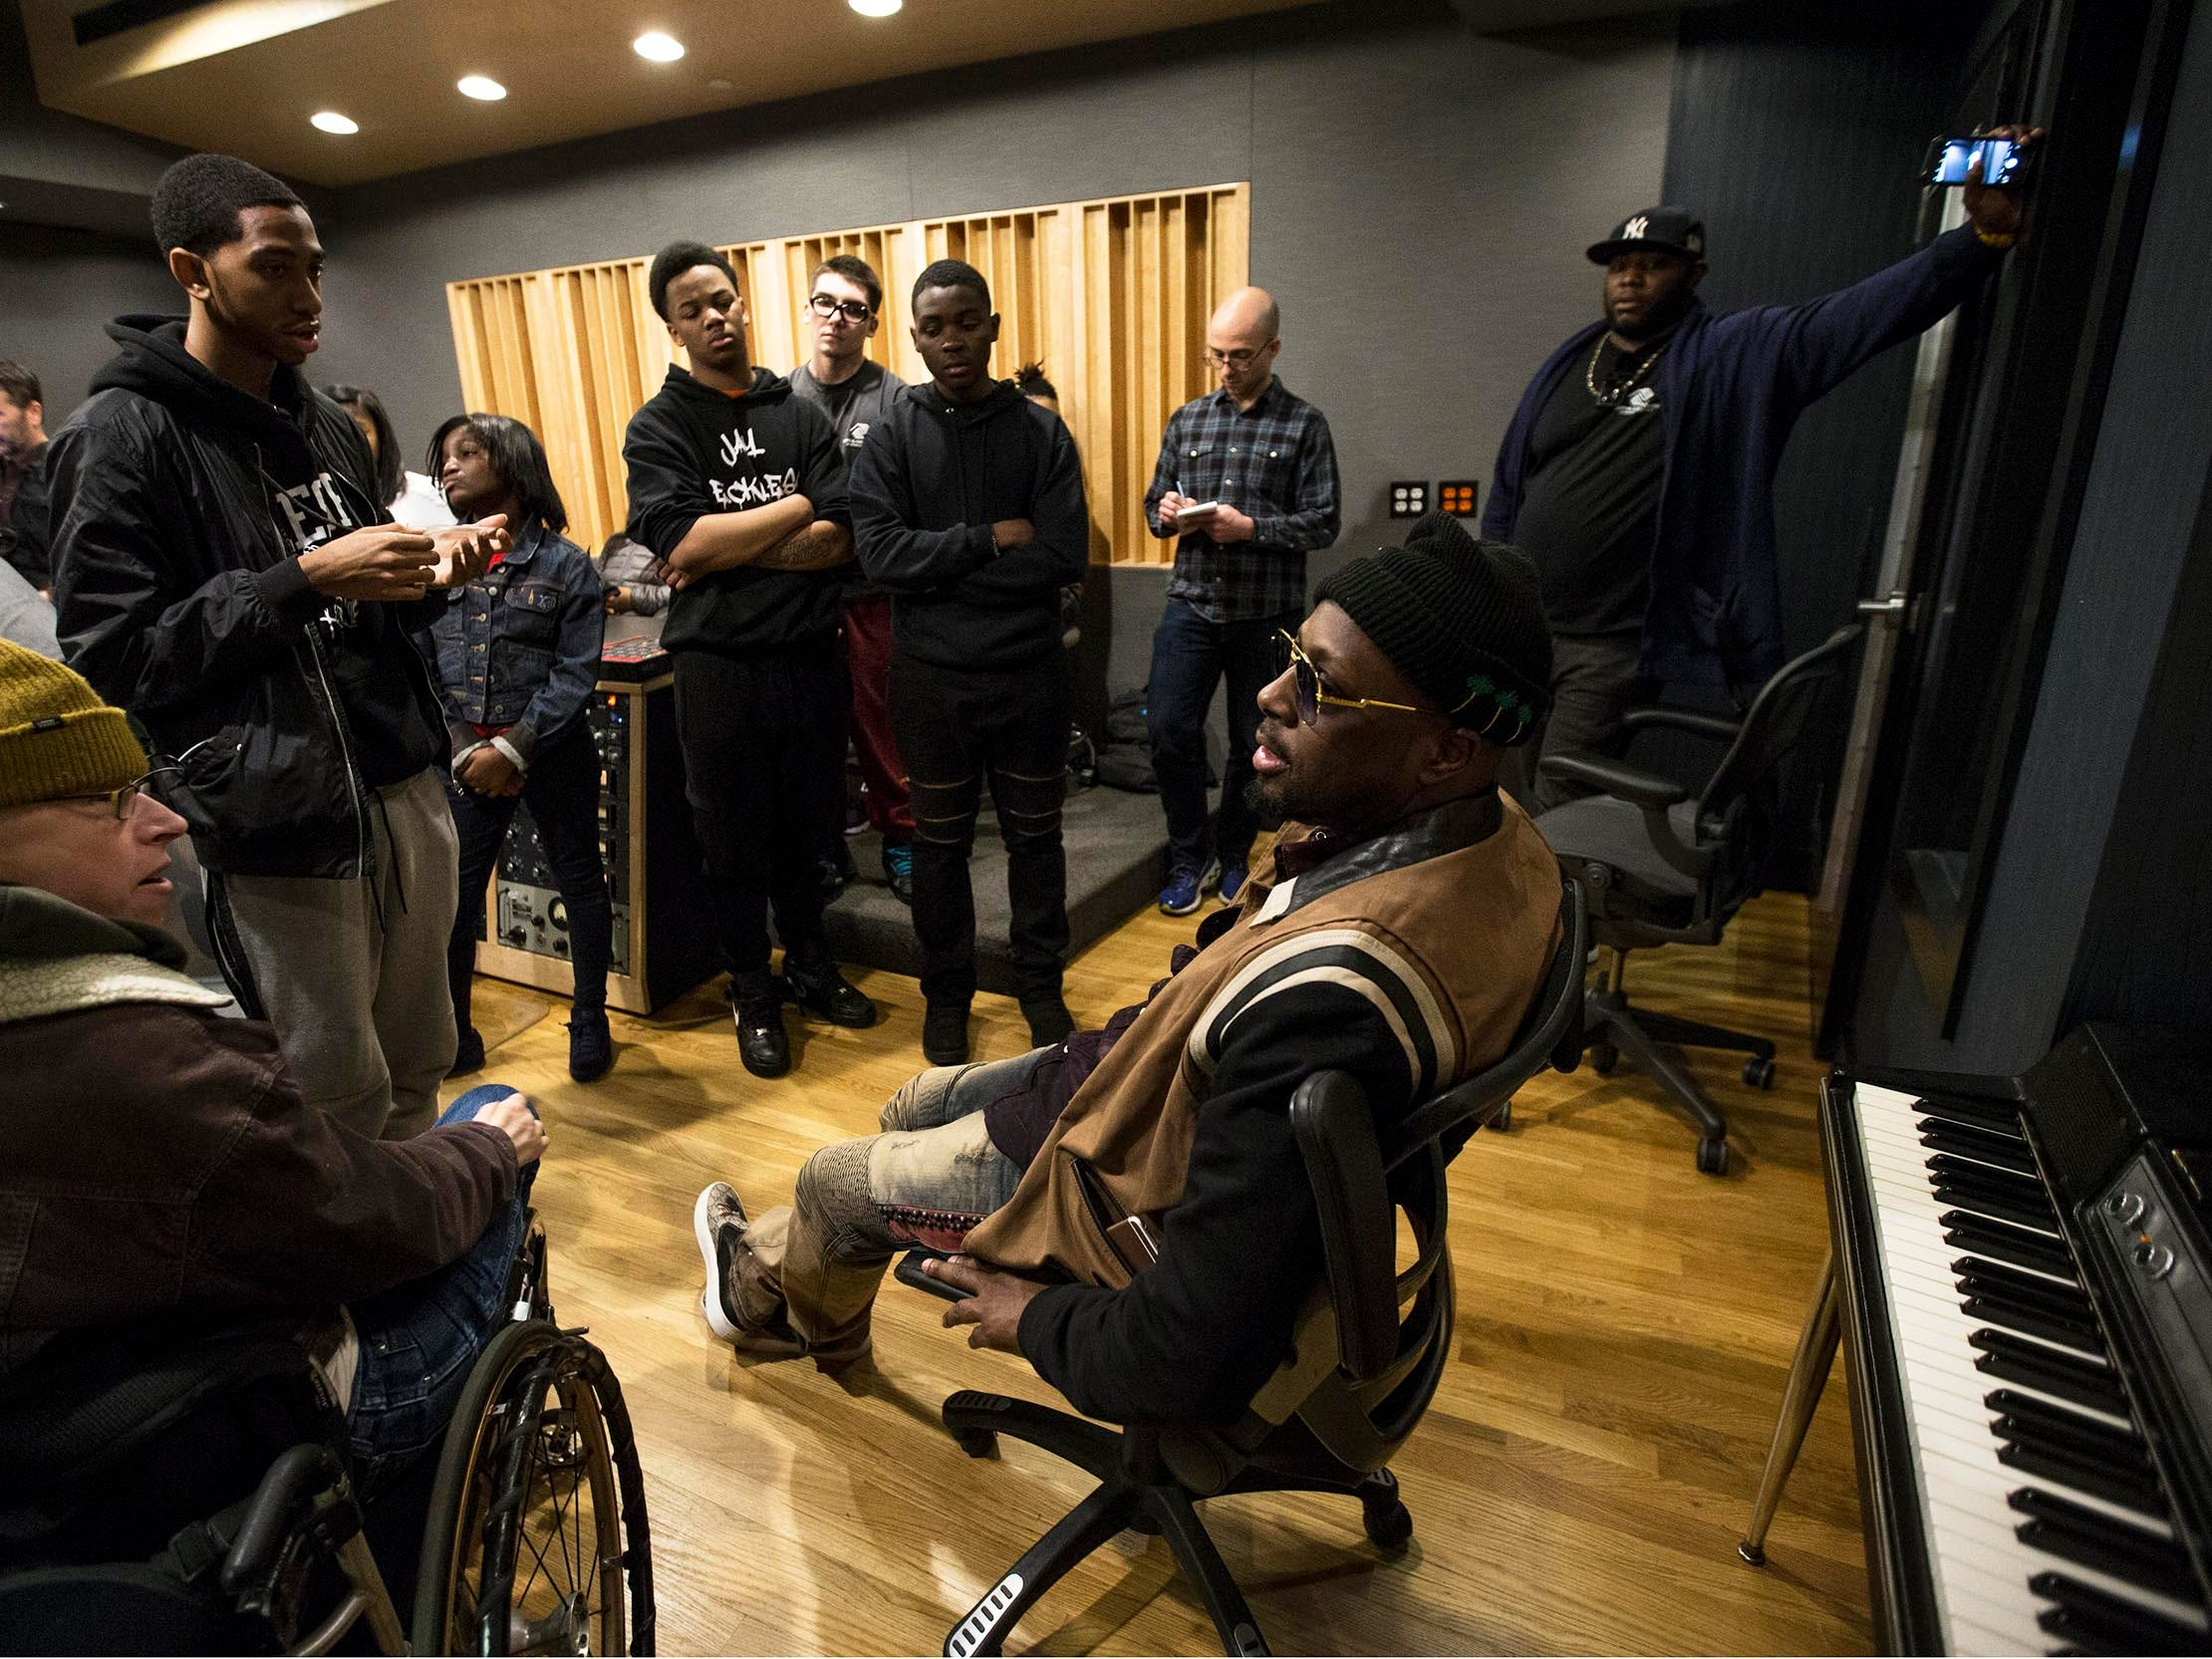 Musician Wyclef Jean drops in to Lakehouse Music Academy to talk with members of the Asbury Park Music Foundation. Wyclef spent a few hours with the kids discussing his career, creating music, and offered advice of how to be successful in life.  Asbury Park, NJ on Tuesday, February 27, 2018